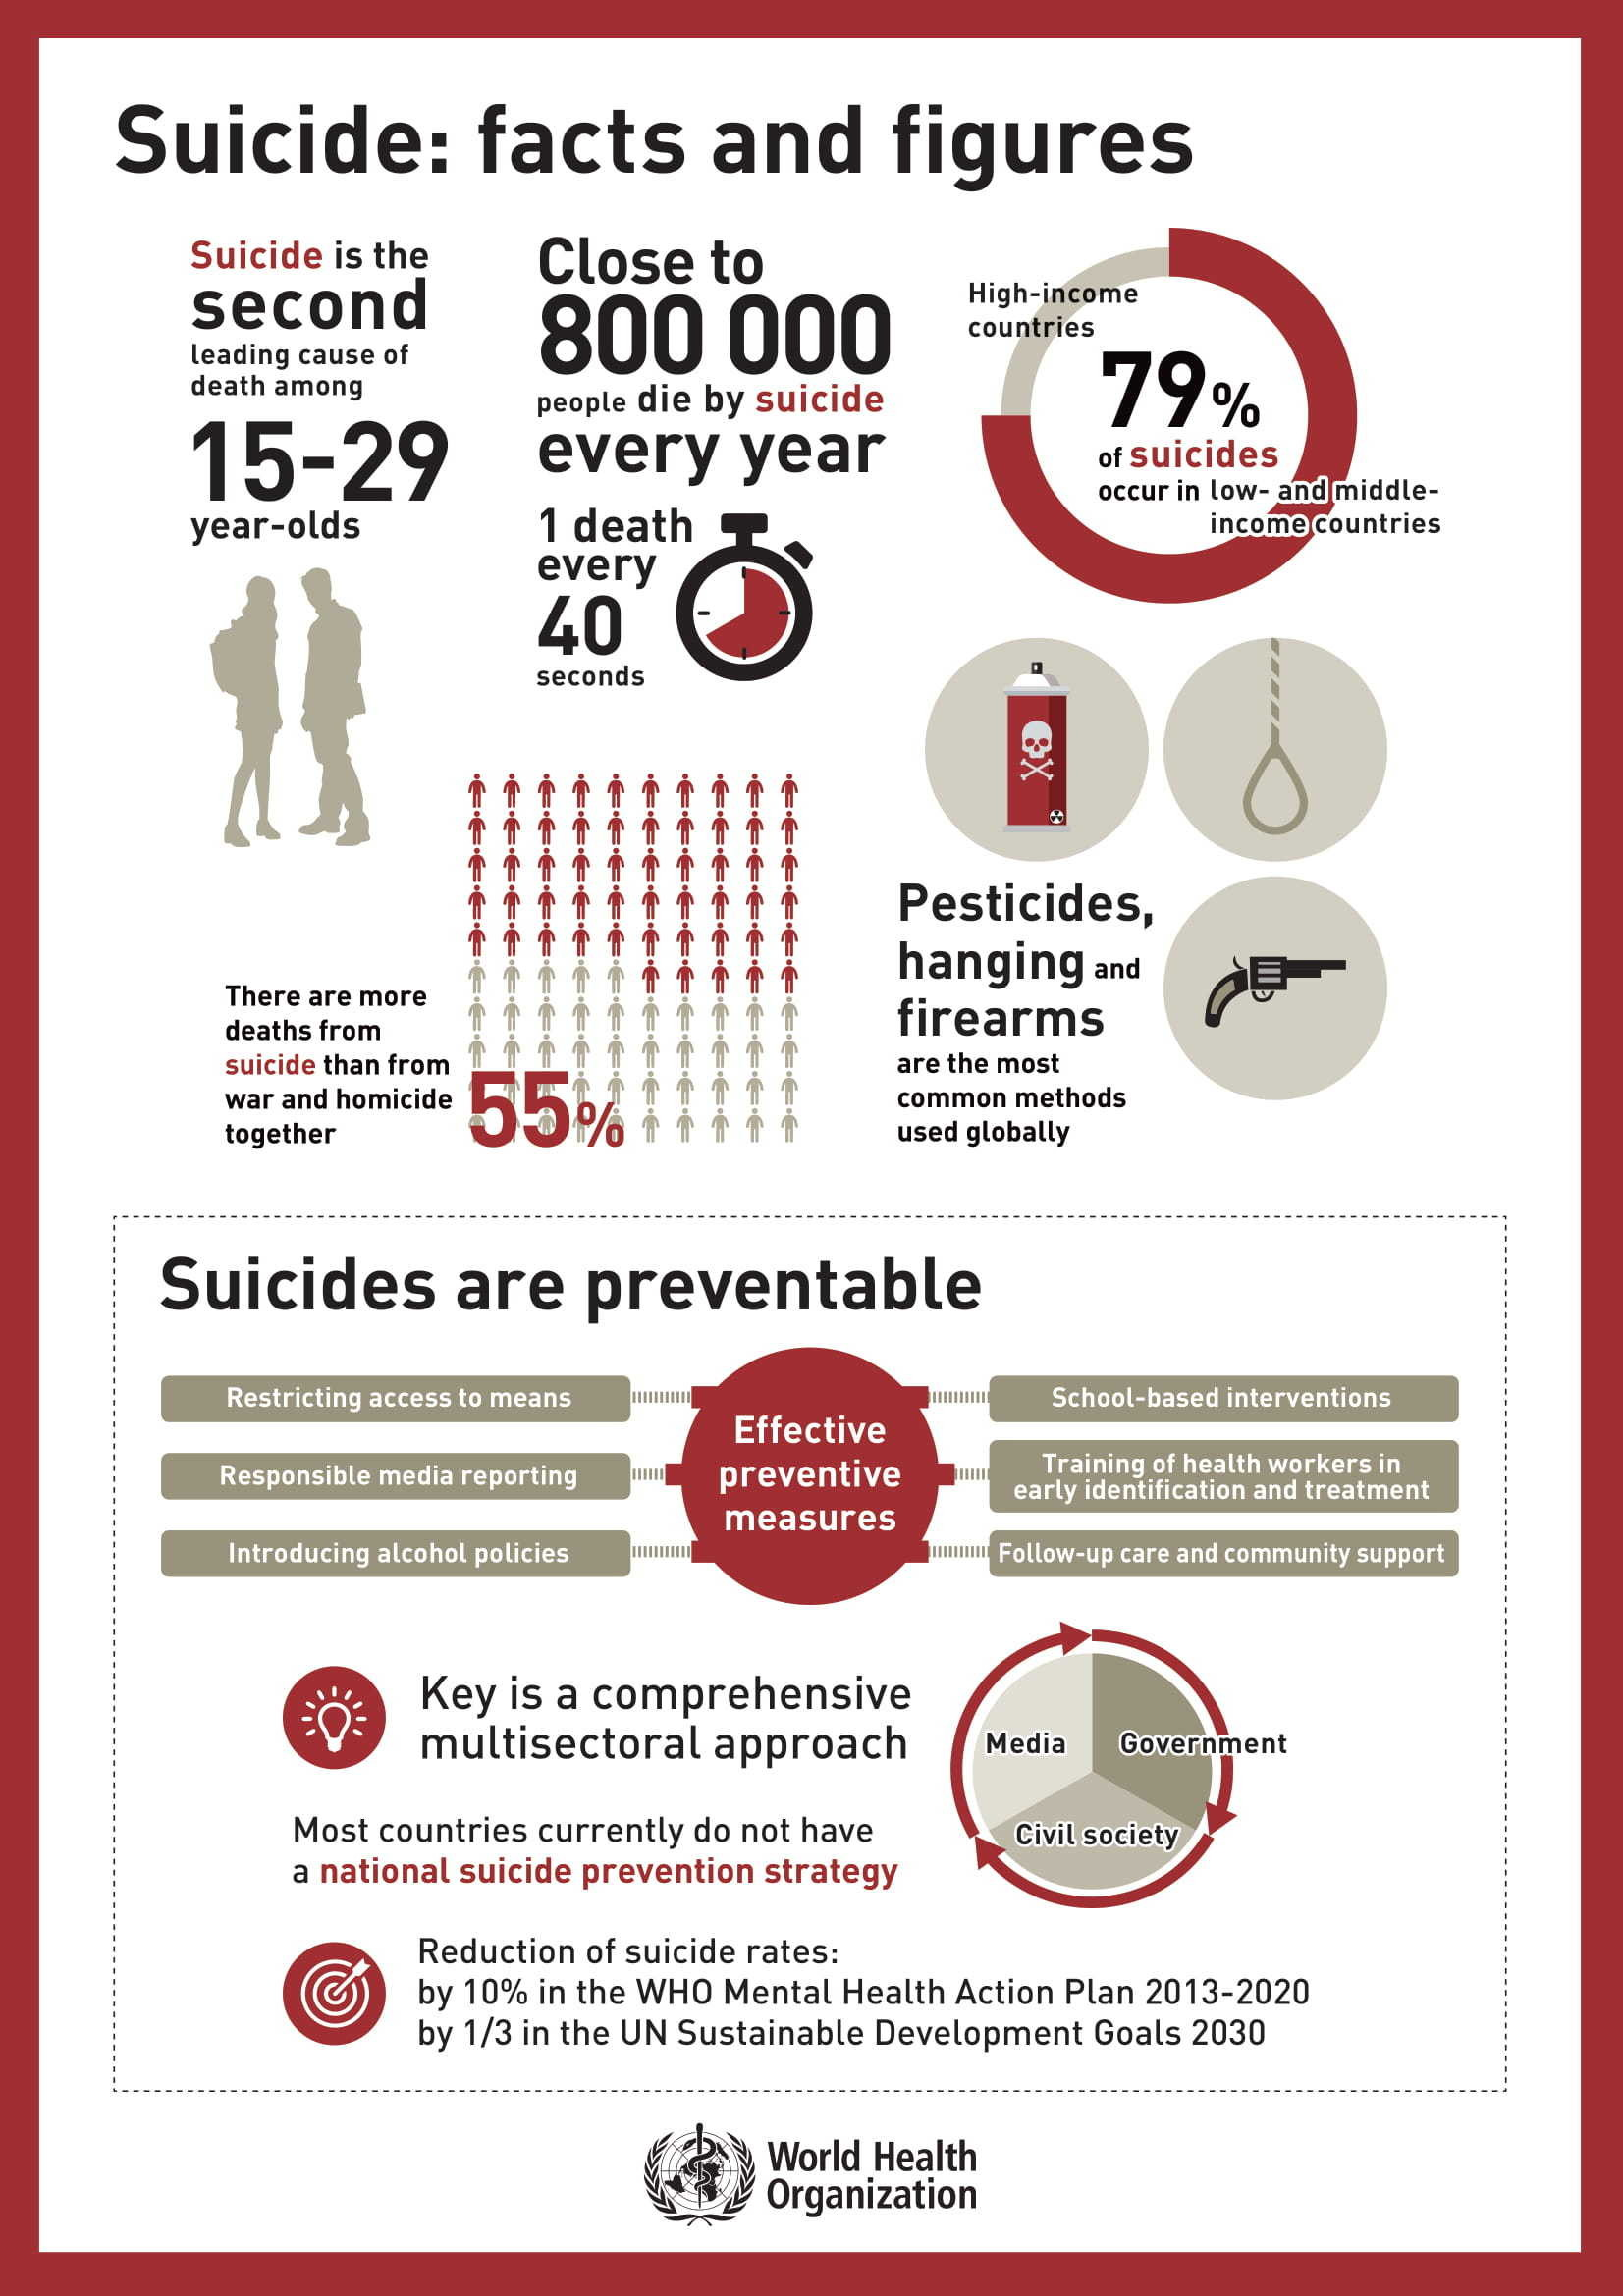 Facts and figures on suicide